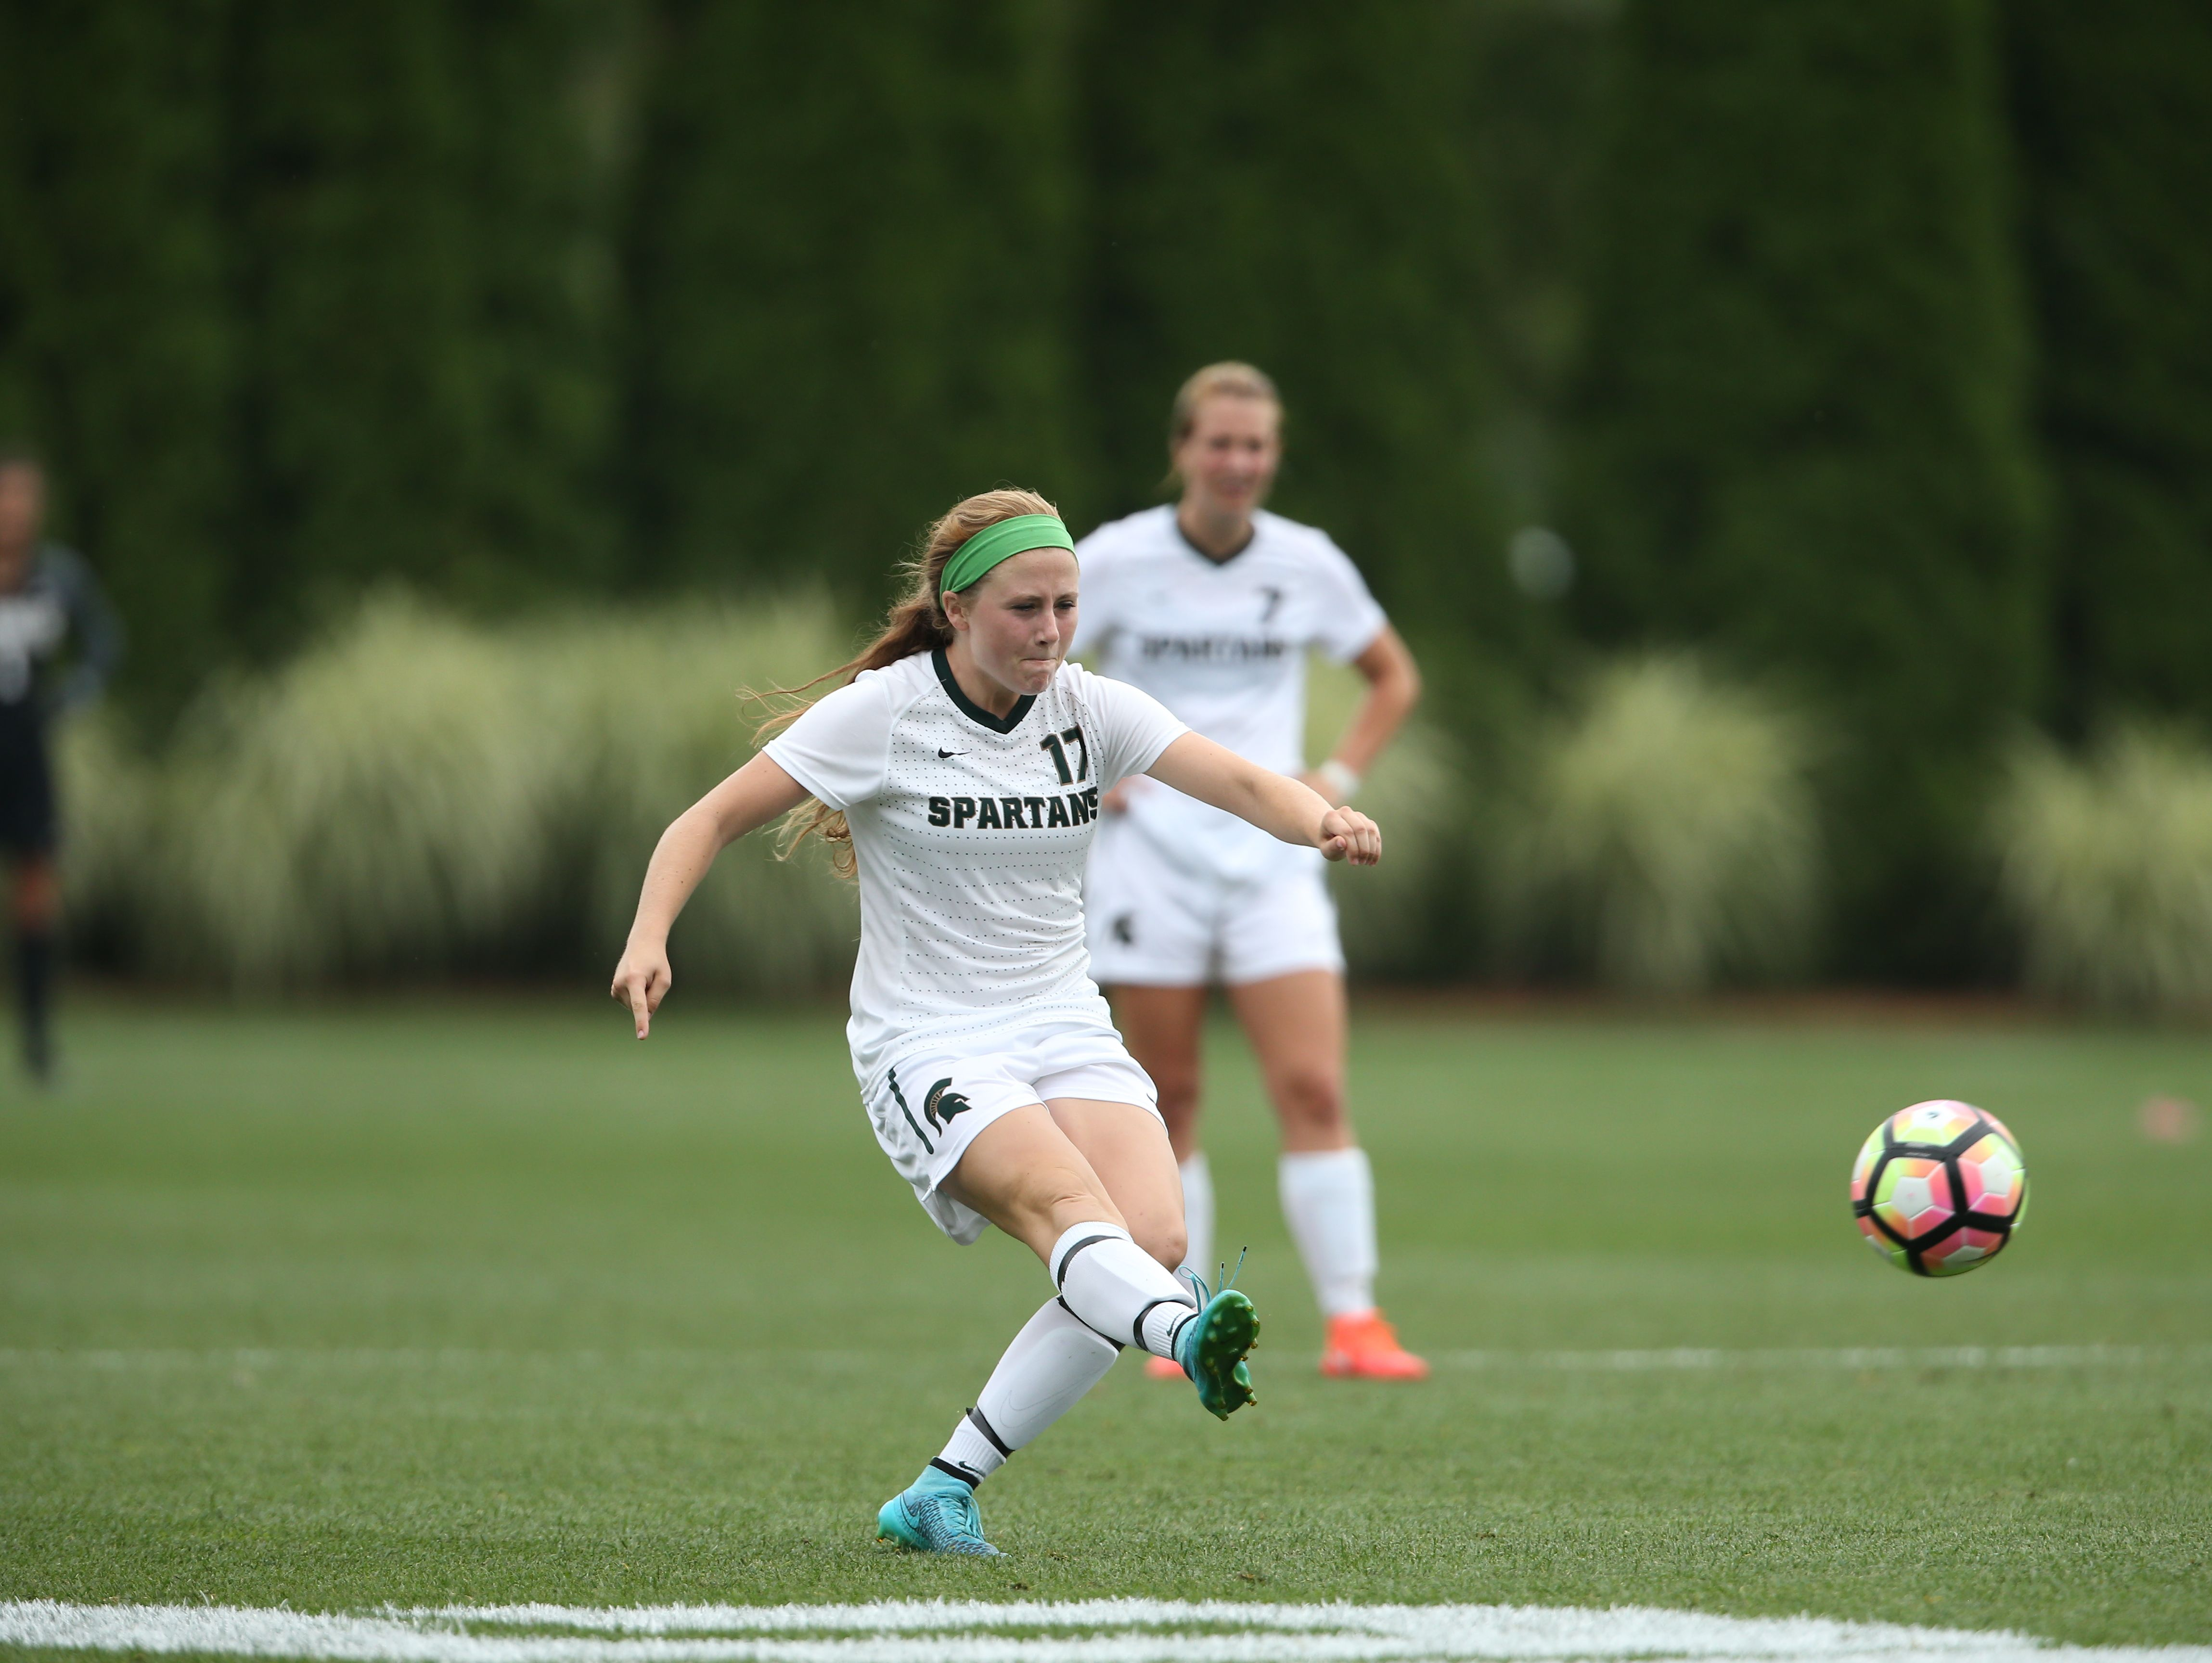 Hannah Hones takes a free kick against Oregon State on Sept. 9 at DeMartin Soccer Stadium.